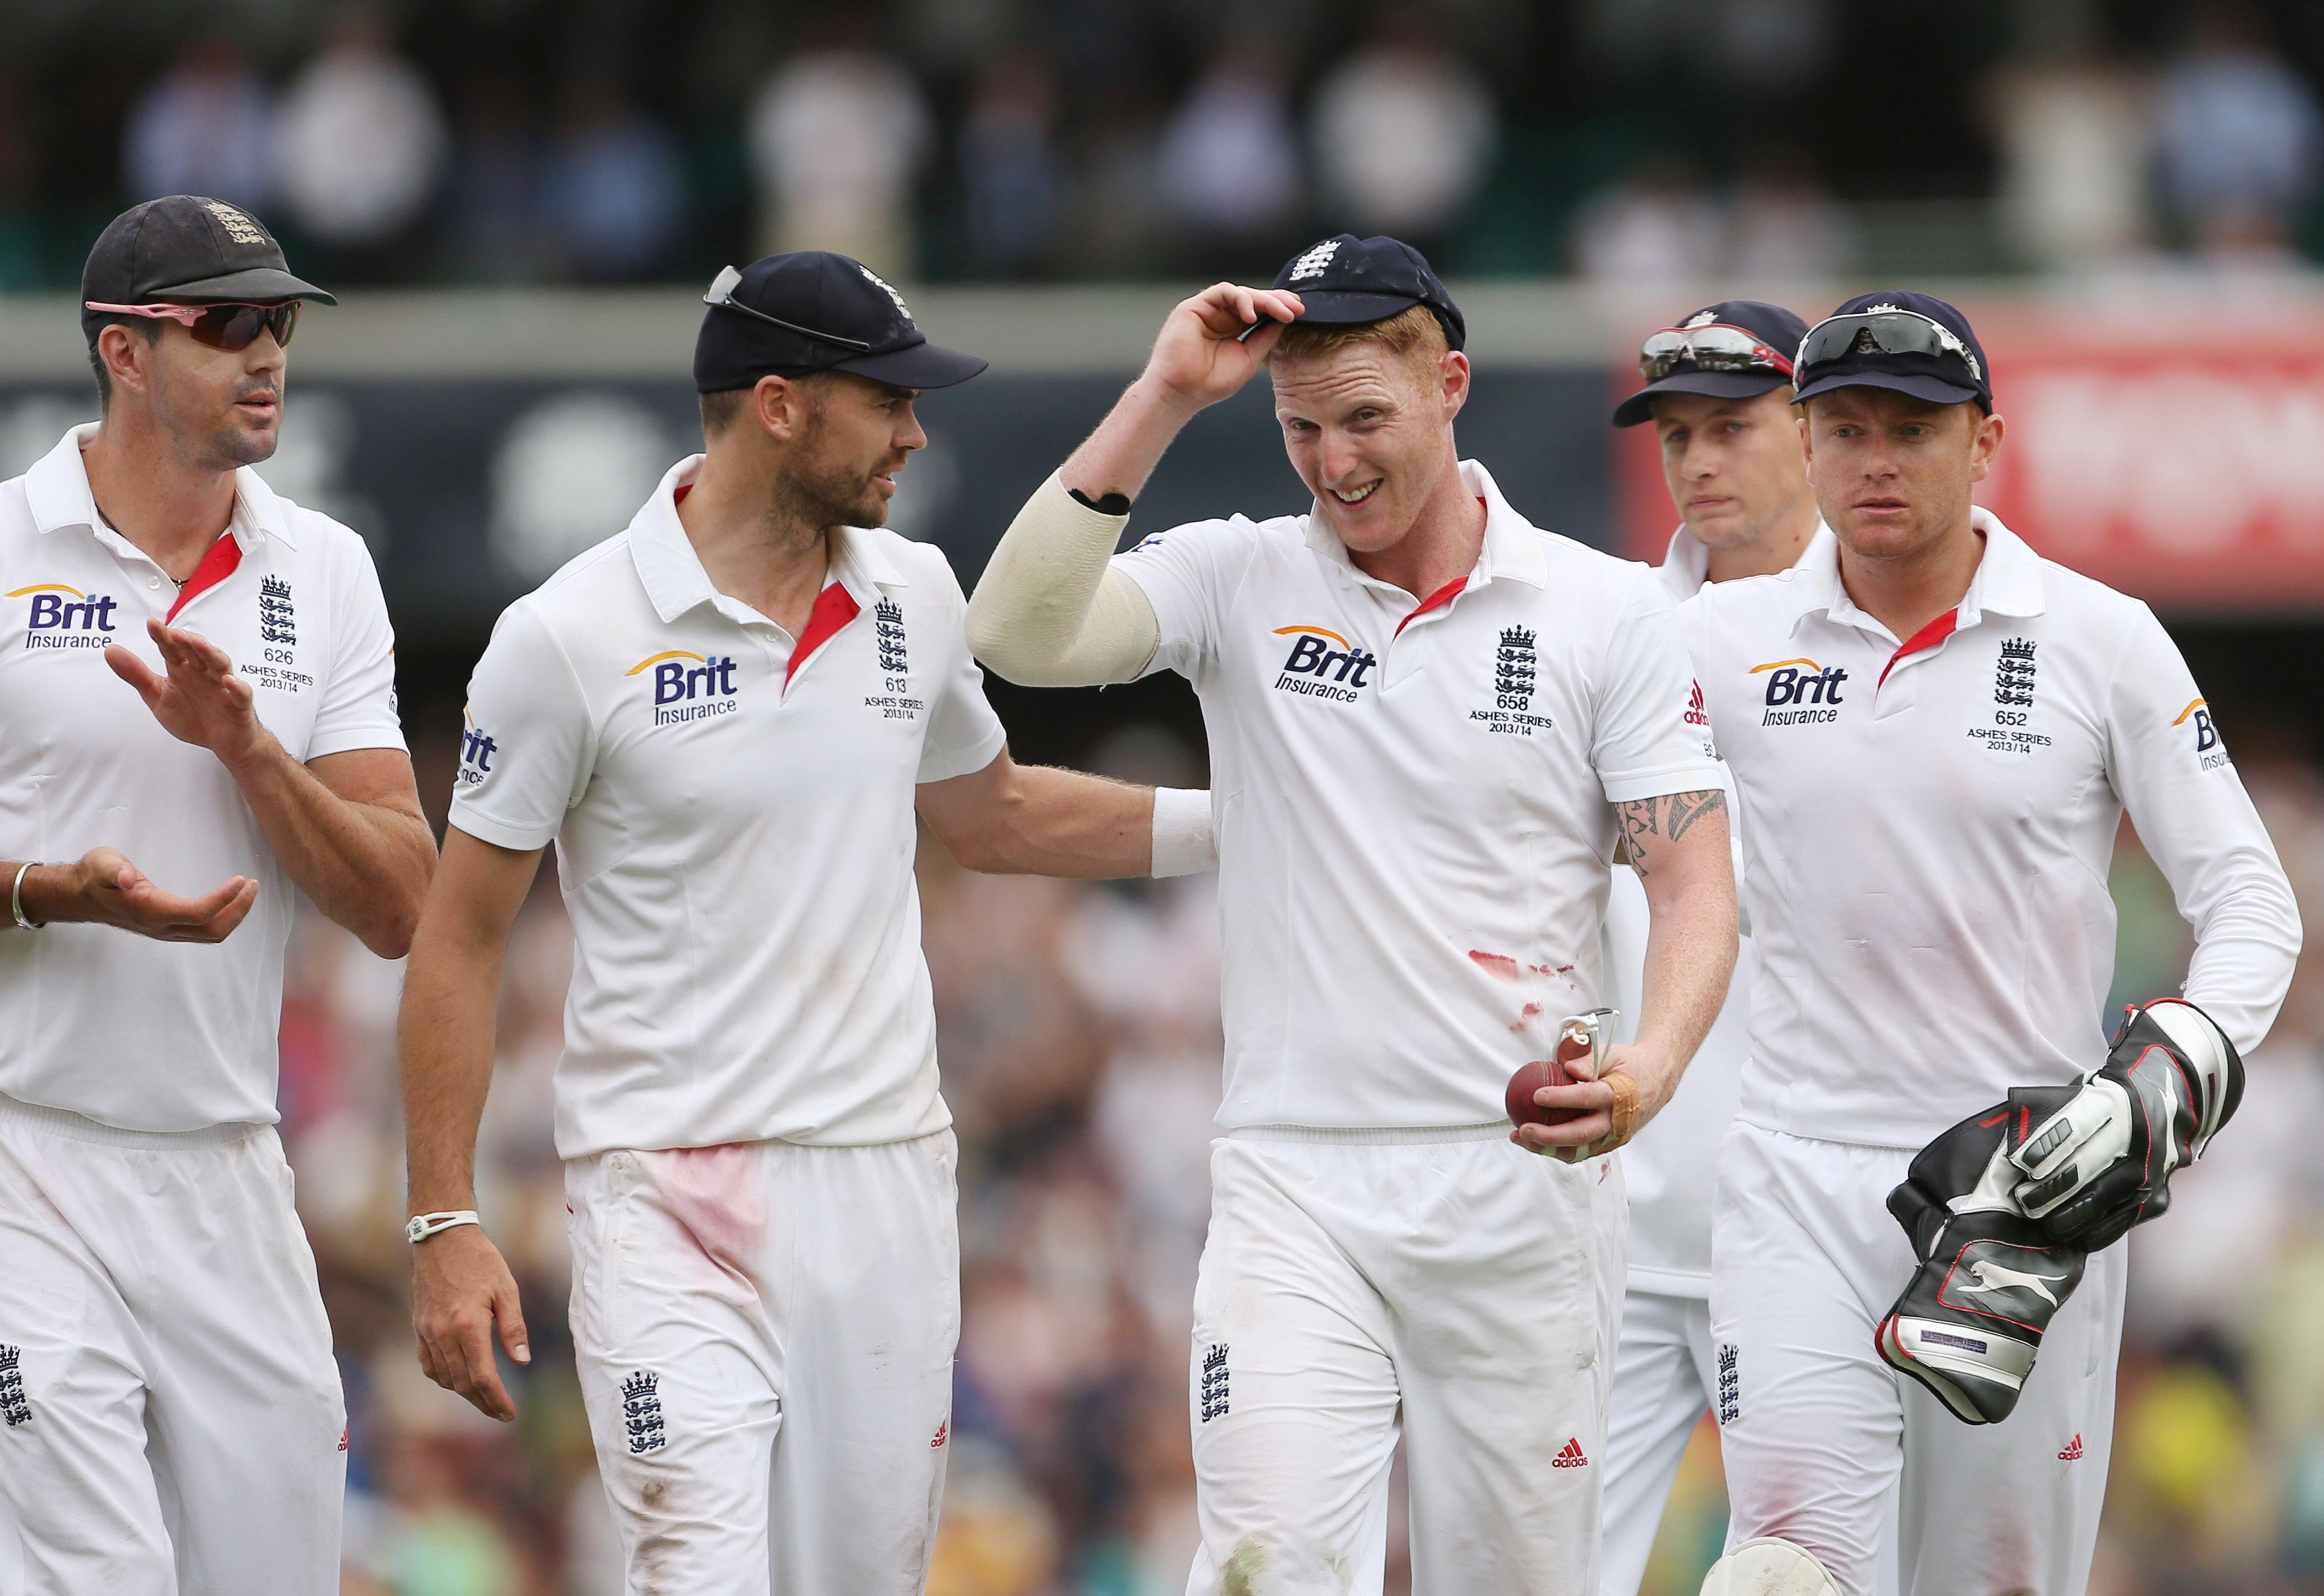 The Ashes 2013-14: Ben Stokes' heroics not enough as England let Australia off the hook